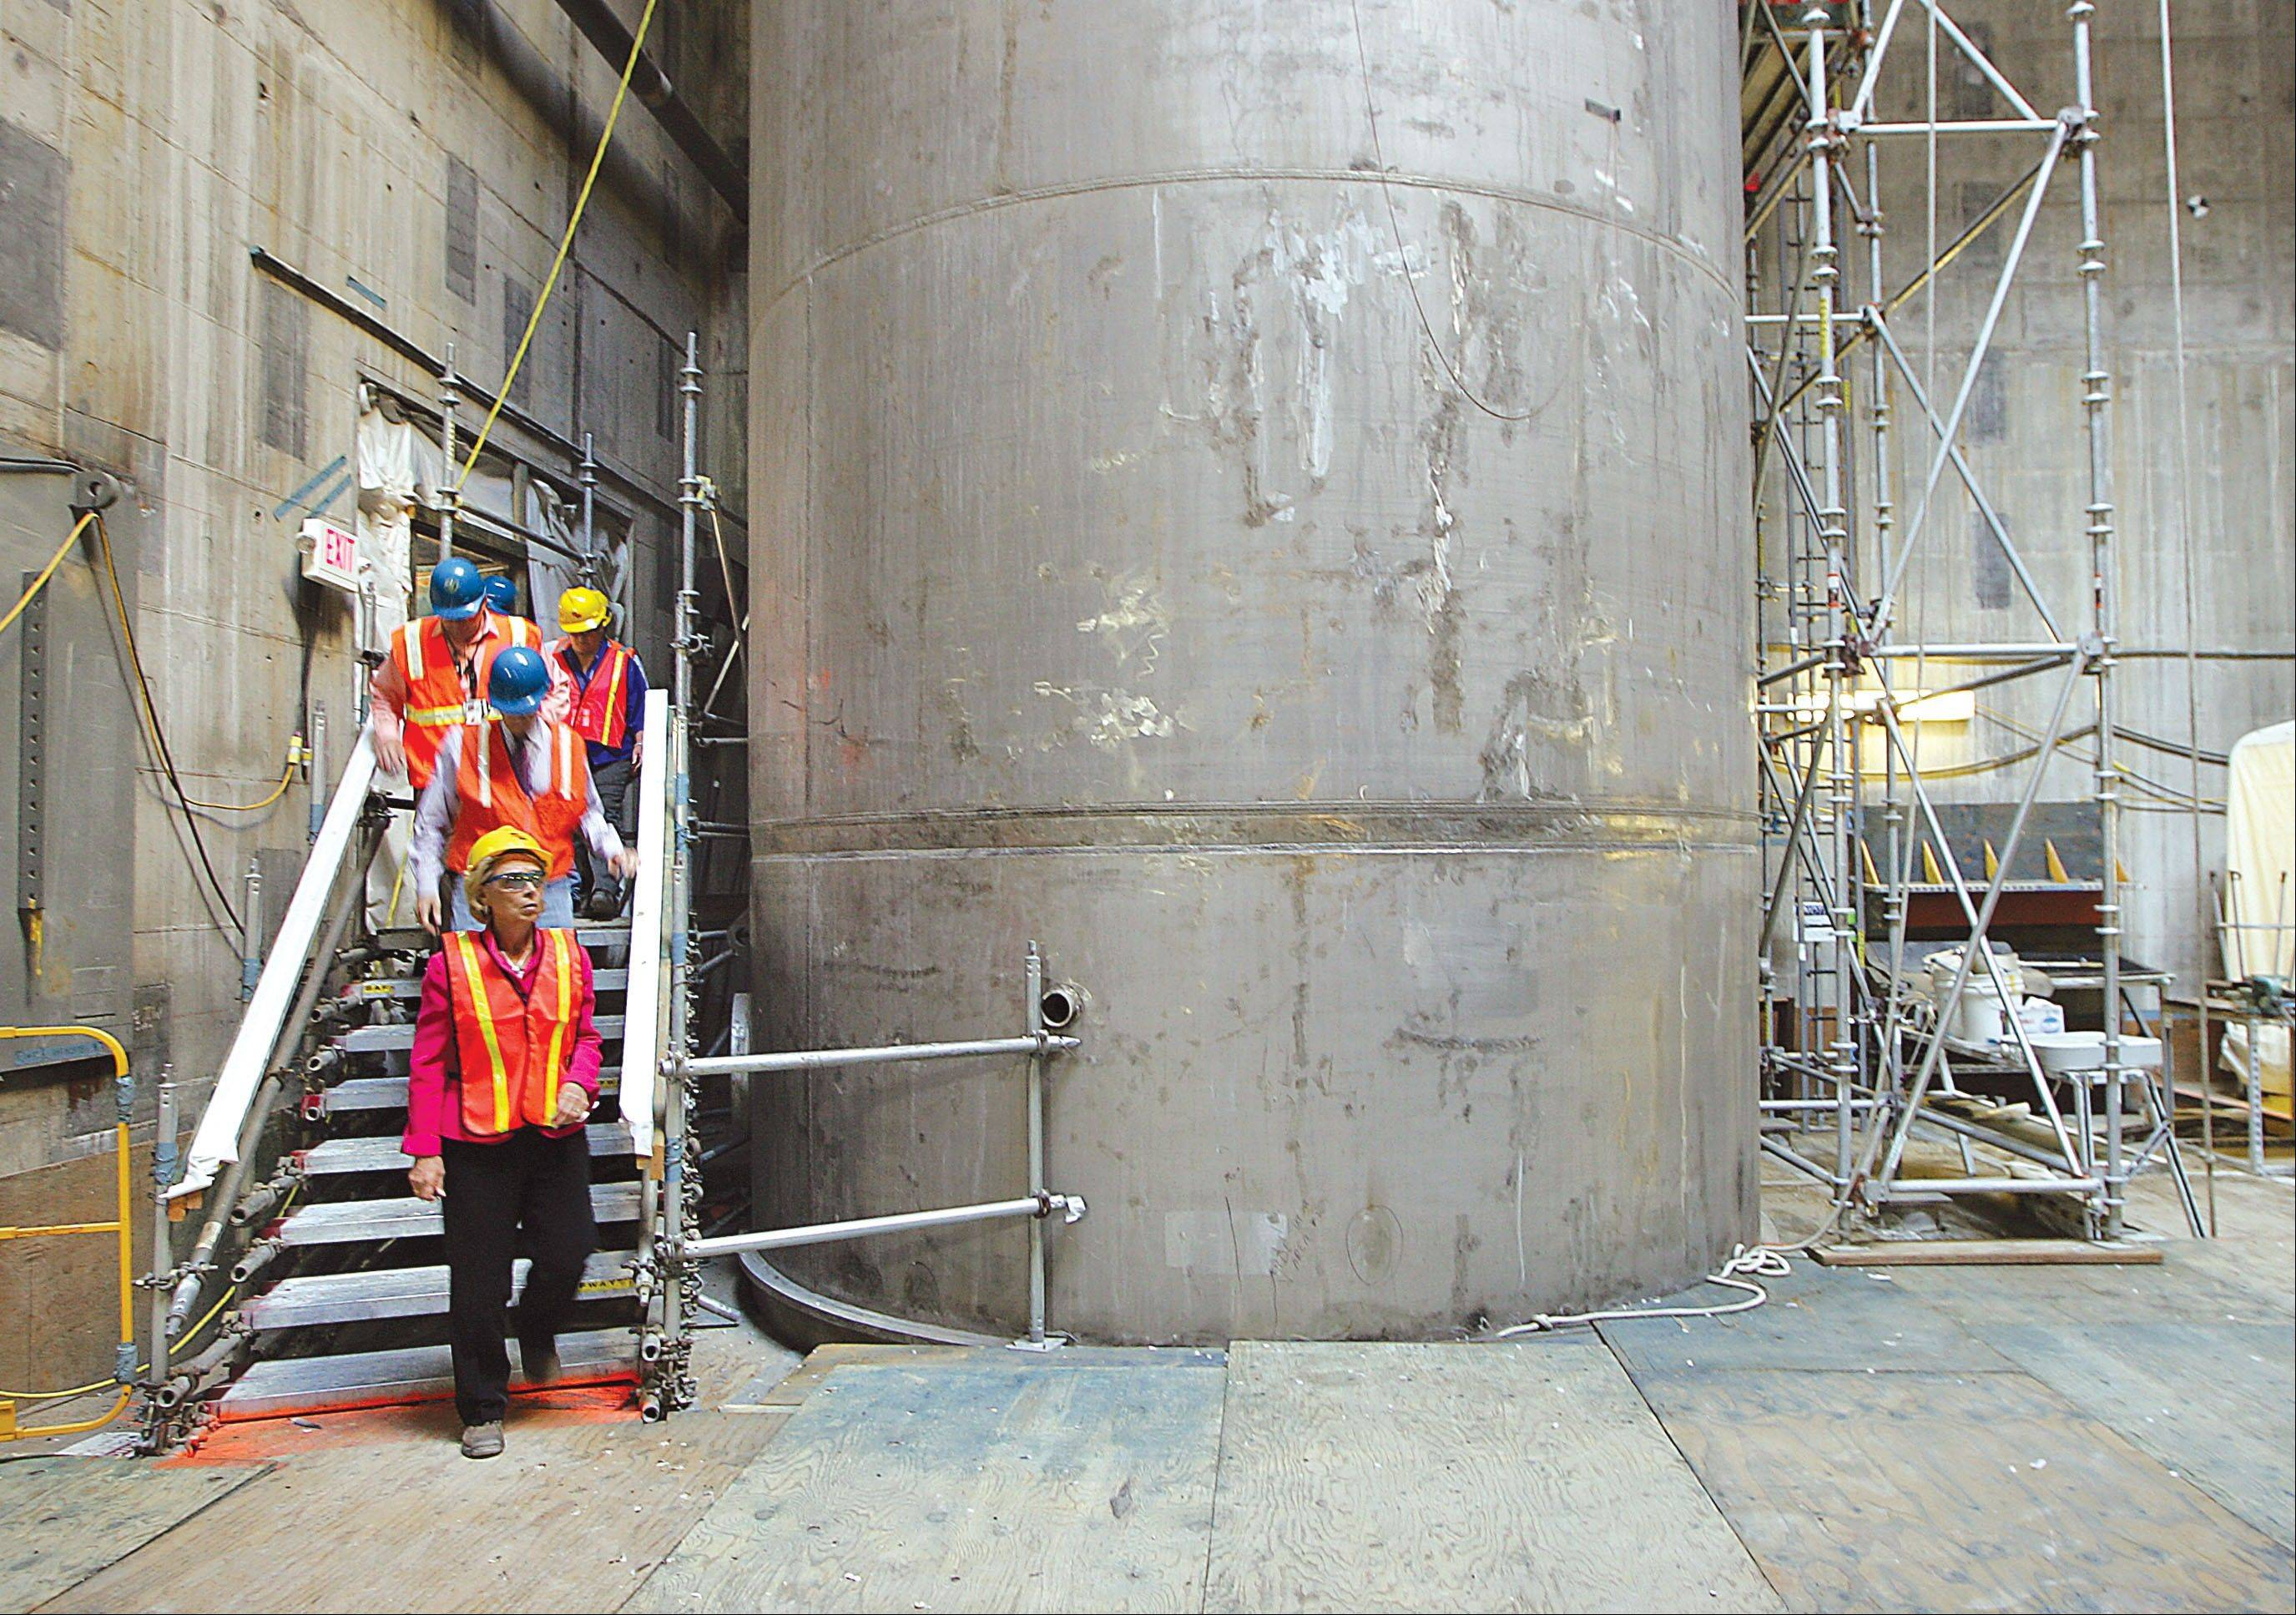 Associated Press/Sept. 18, 2012 Then-Gov. Chris Gregoire makes her way down a set of stairs at the Hanford Vitrification Plant in Richland, Wash. Six underground radioactive waste tanks at the nation�s most contaminated nuclear site are leaking, Gov. Jay Inslee said Friday.